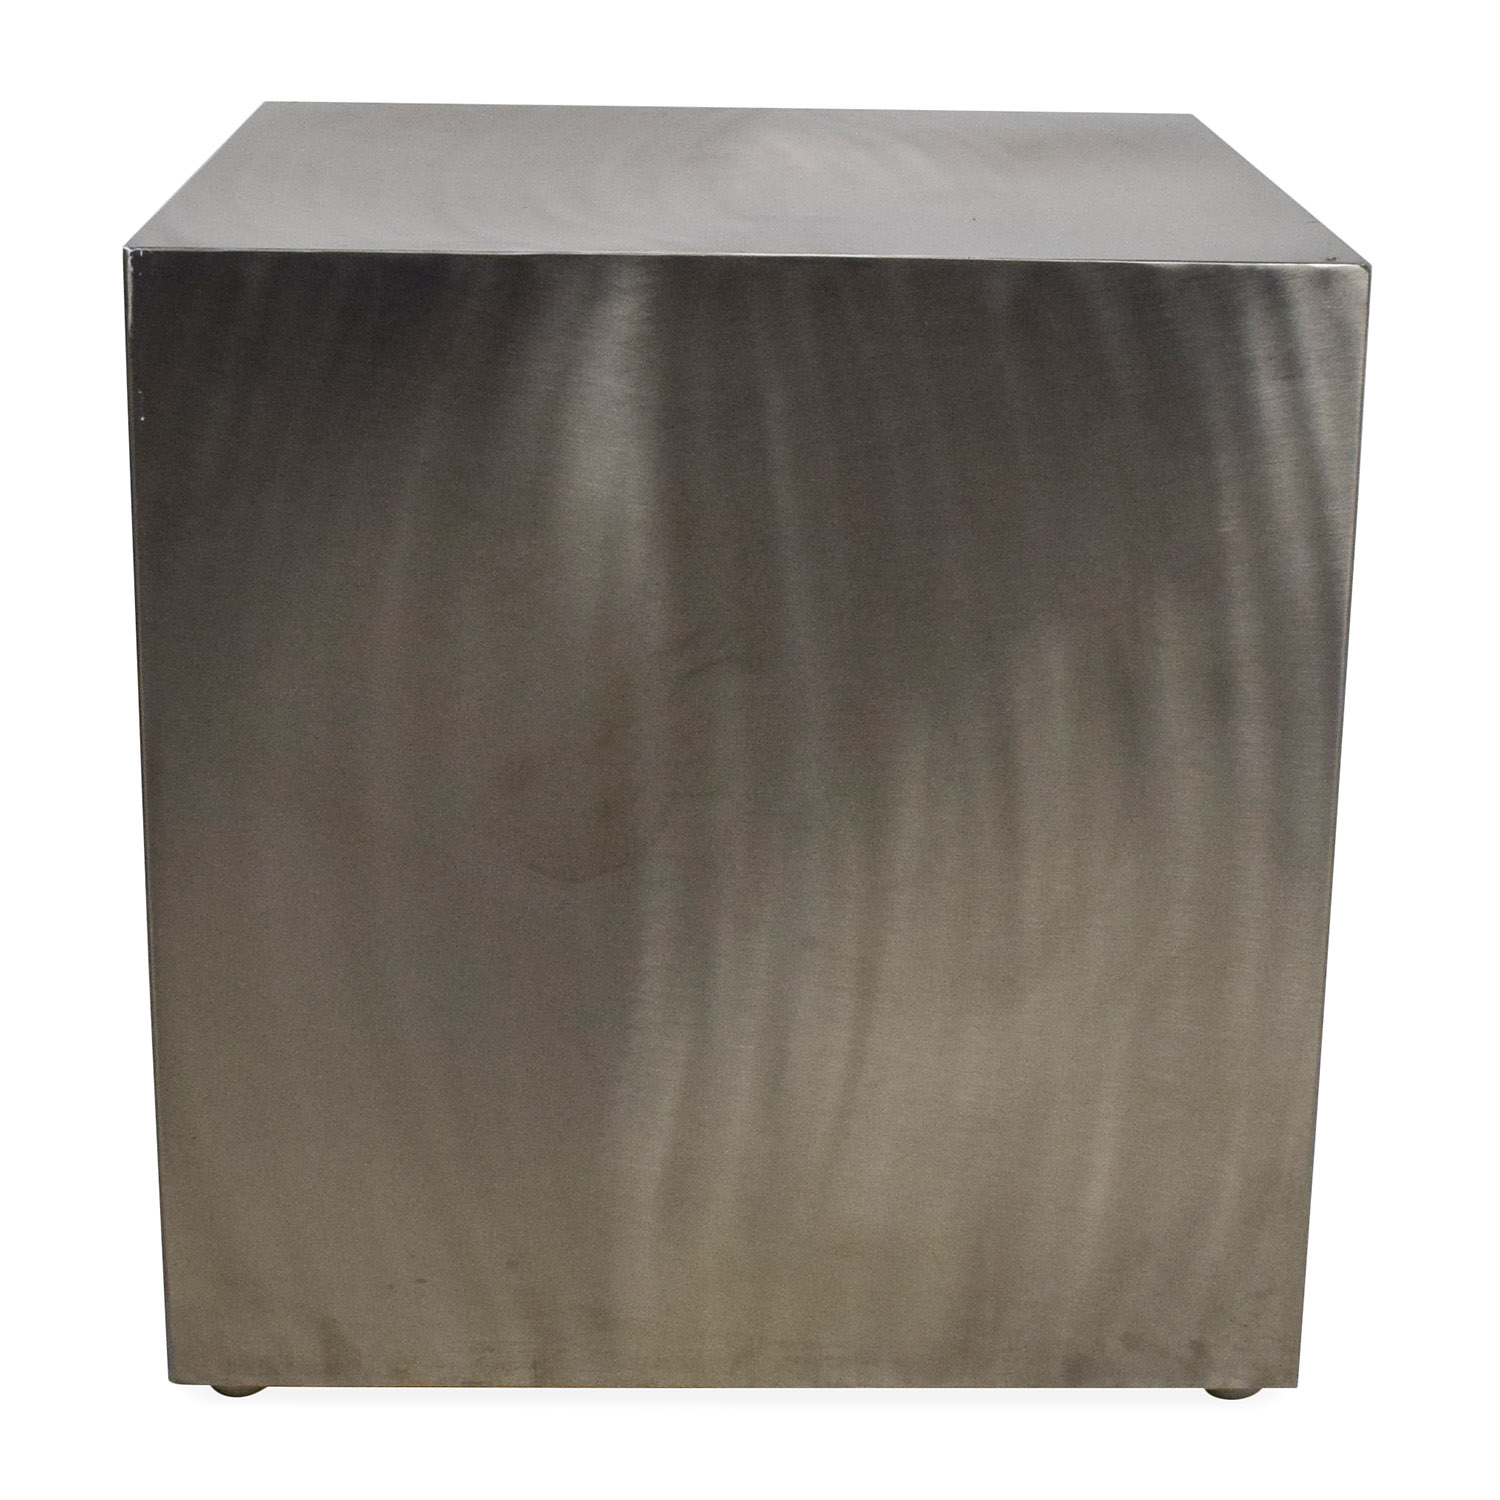 Zuo Modern Contemporary Stainless Steel End Table used